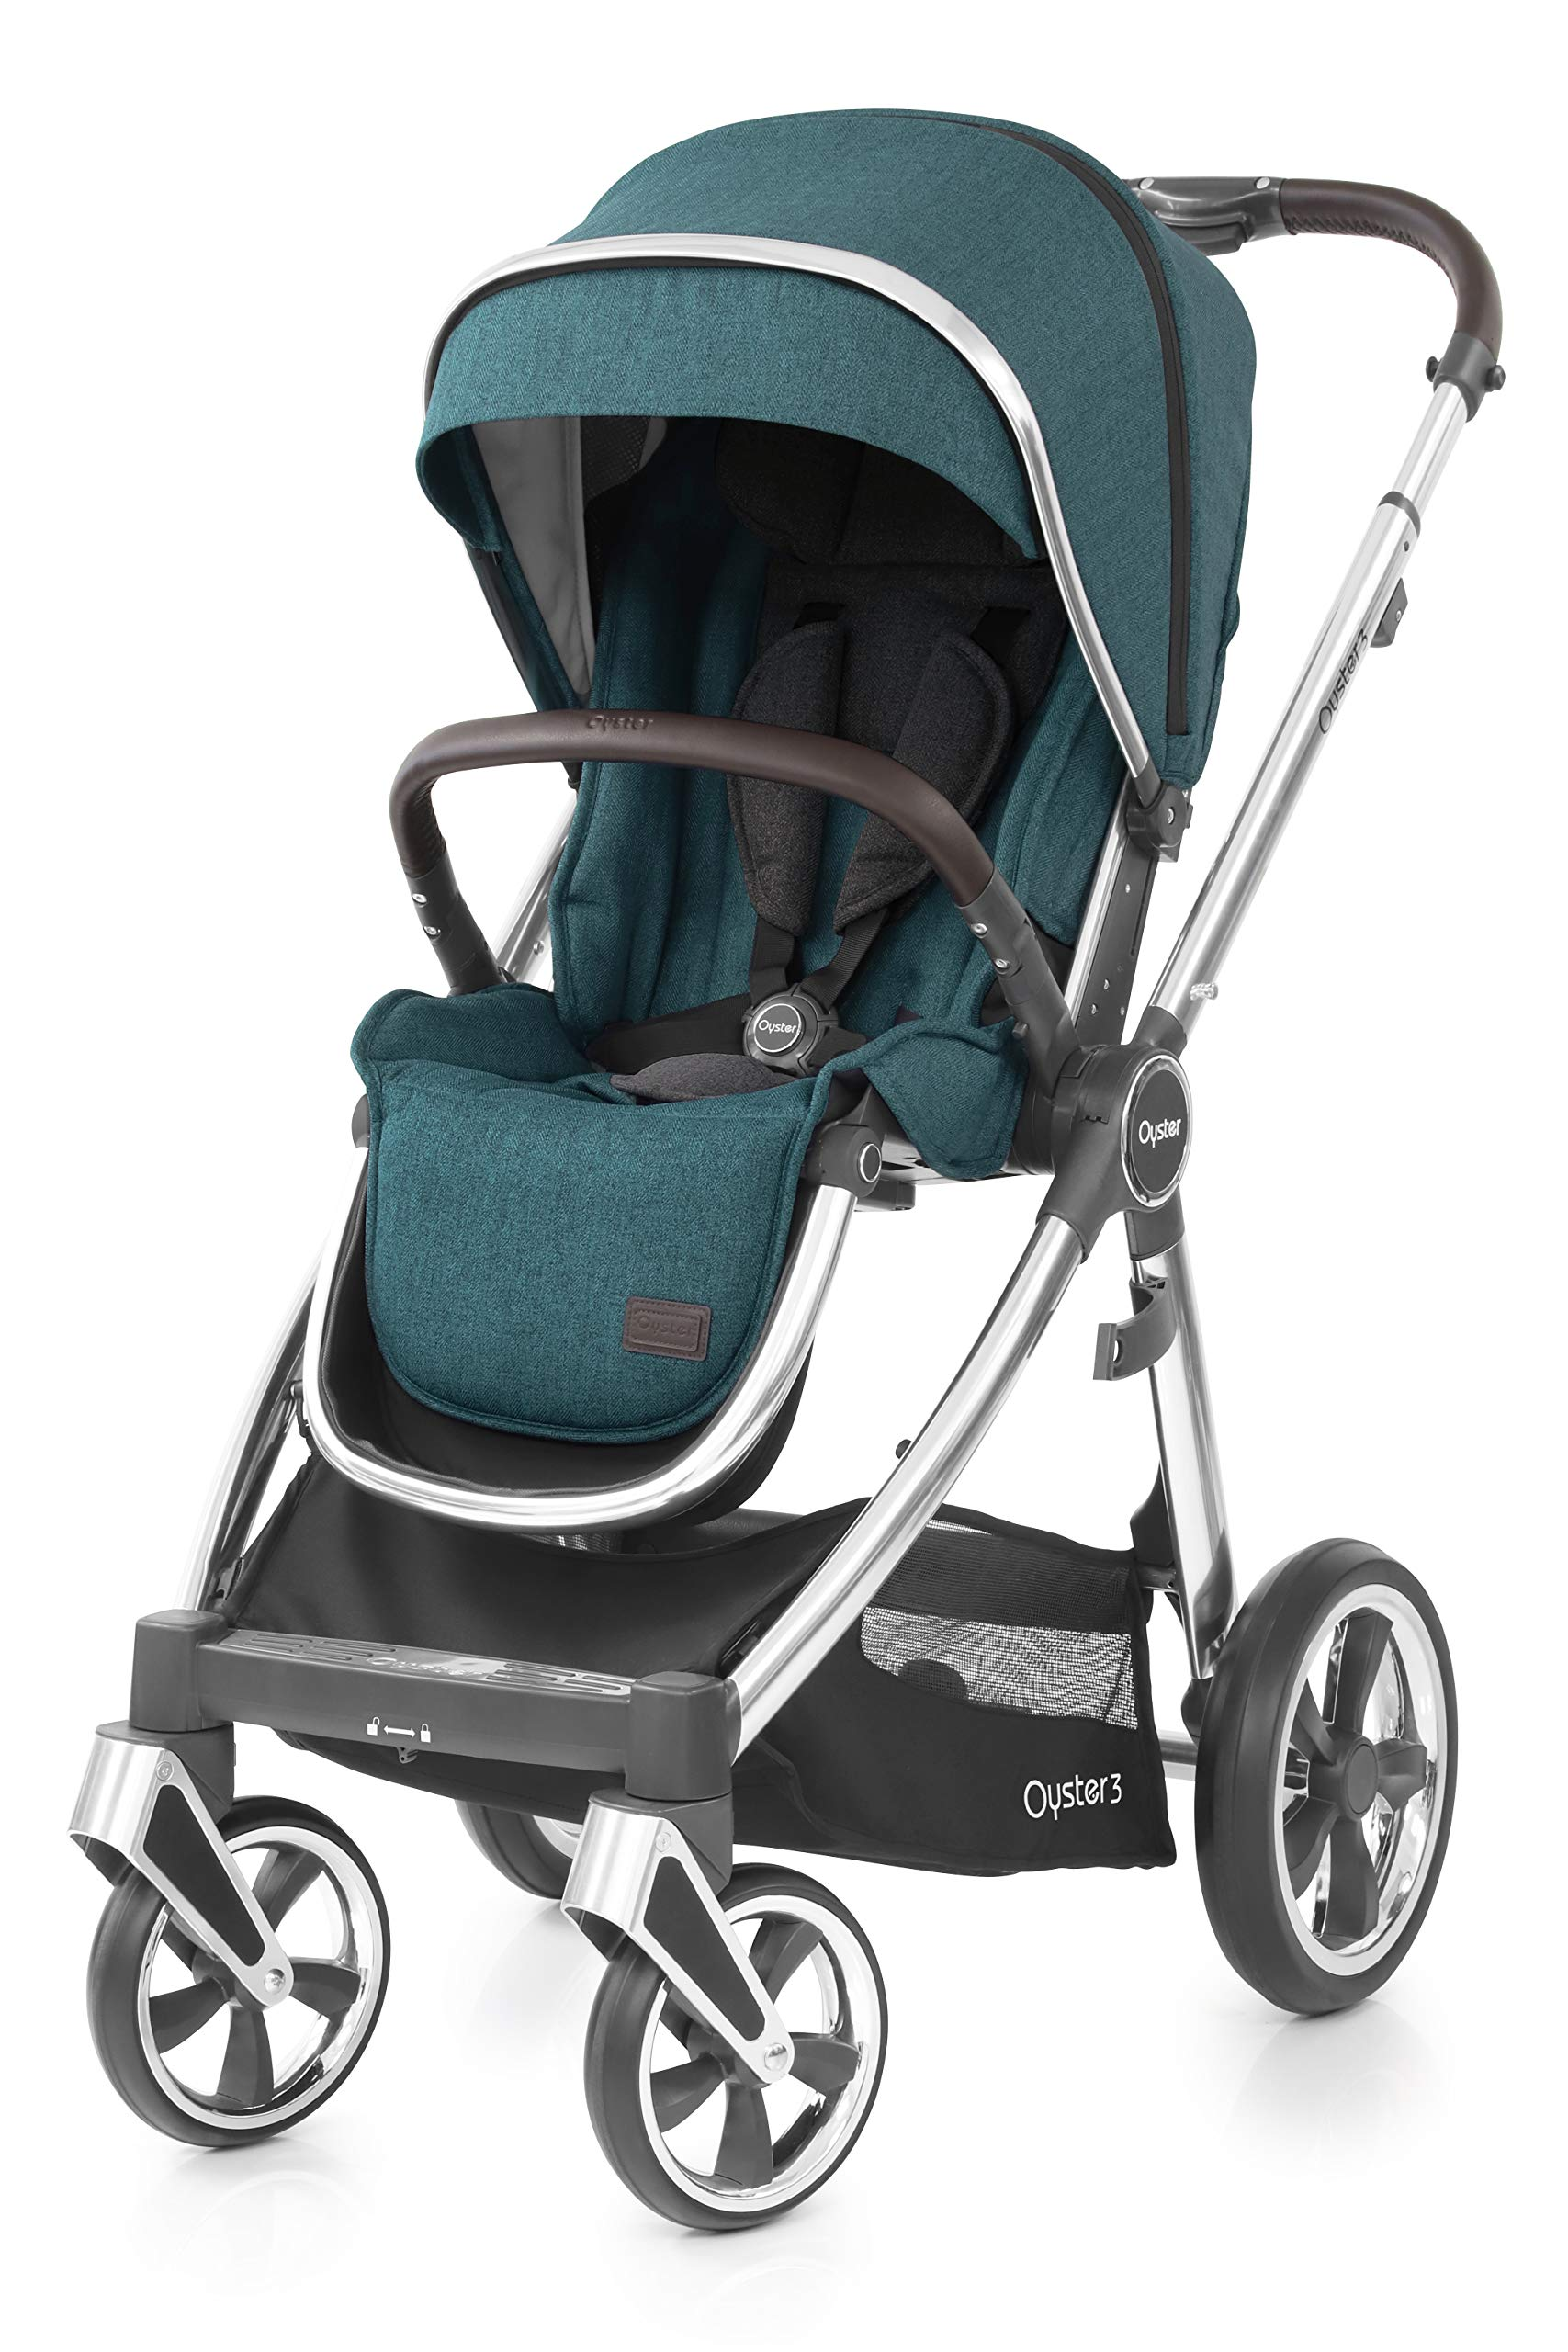 Babystyle Oyster3 Pushchair in Peacock Mirror Chassis Babystyle  2